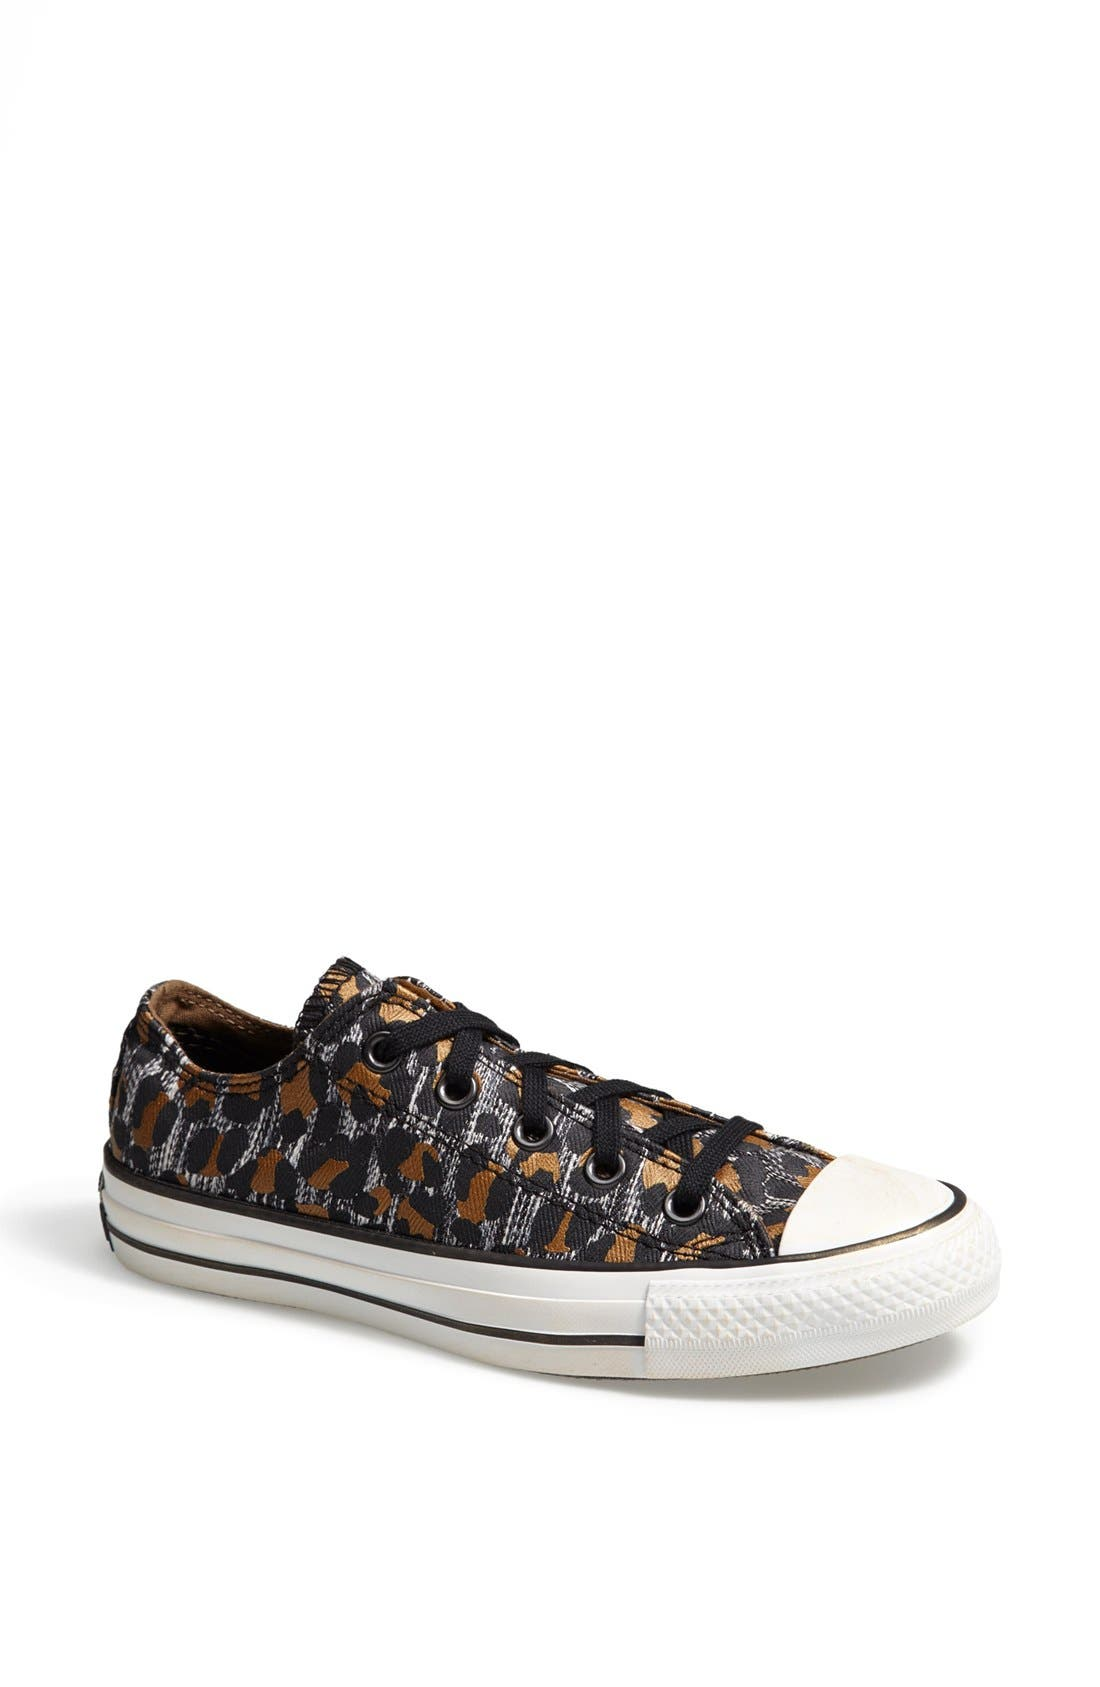 Alternate Image 1 Selected - Converse Chuck Taylor® All Star® Low Print Sneaker (Women)